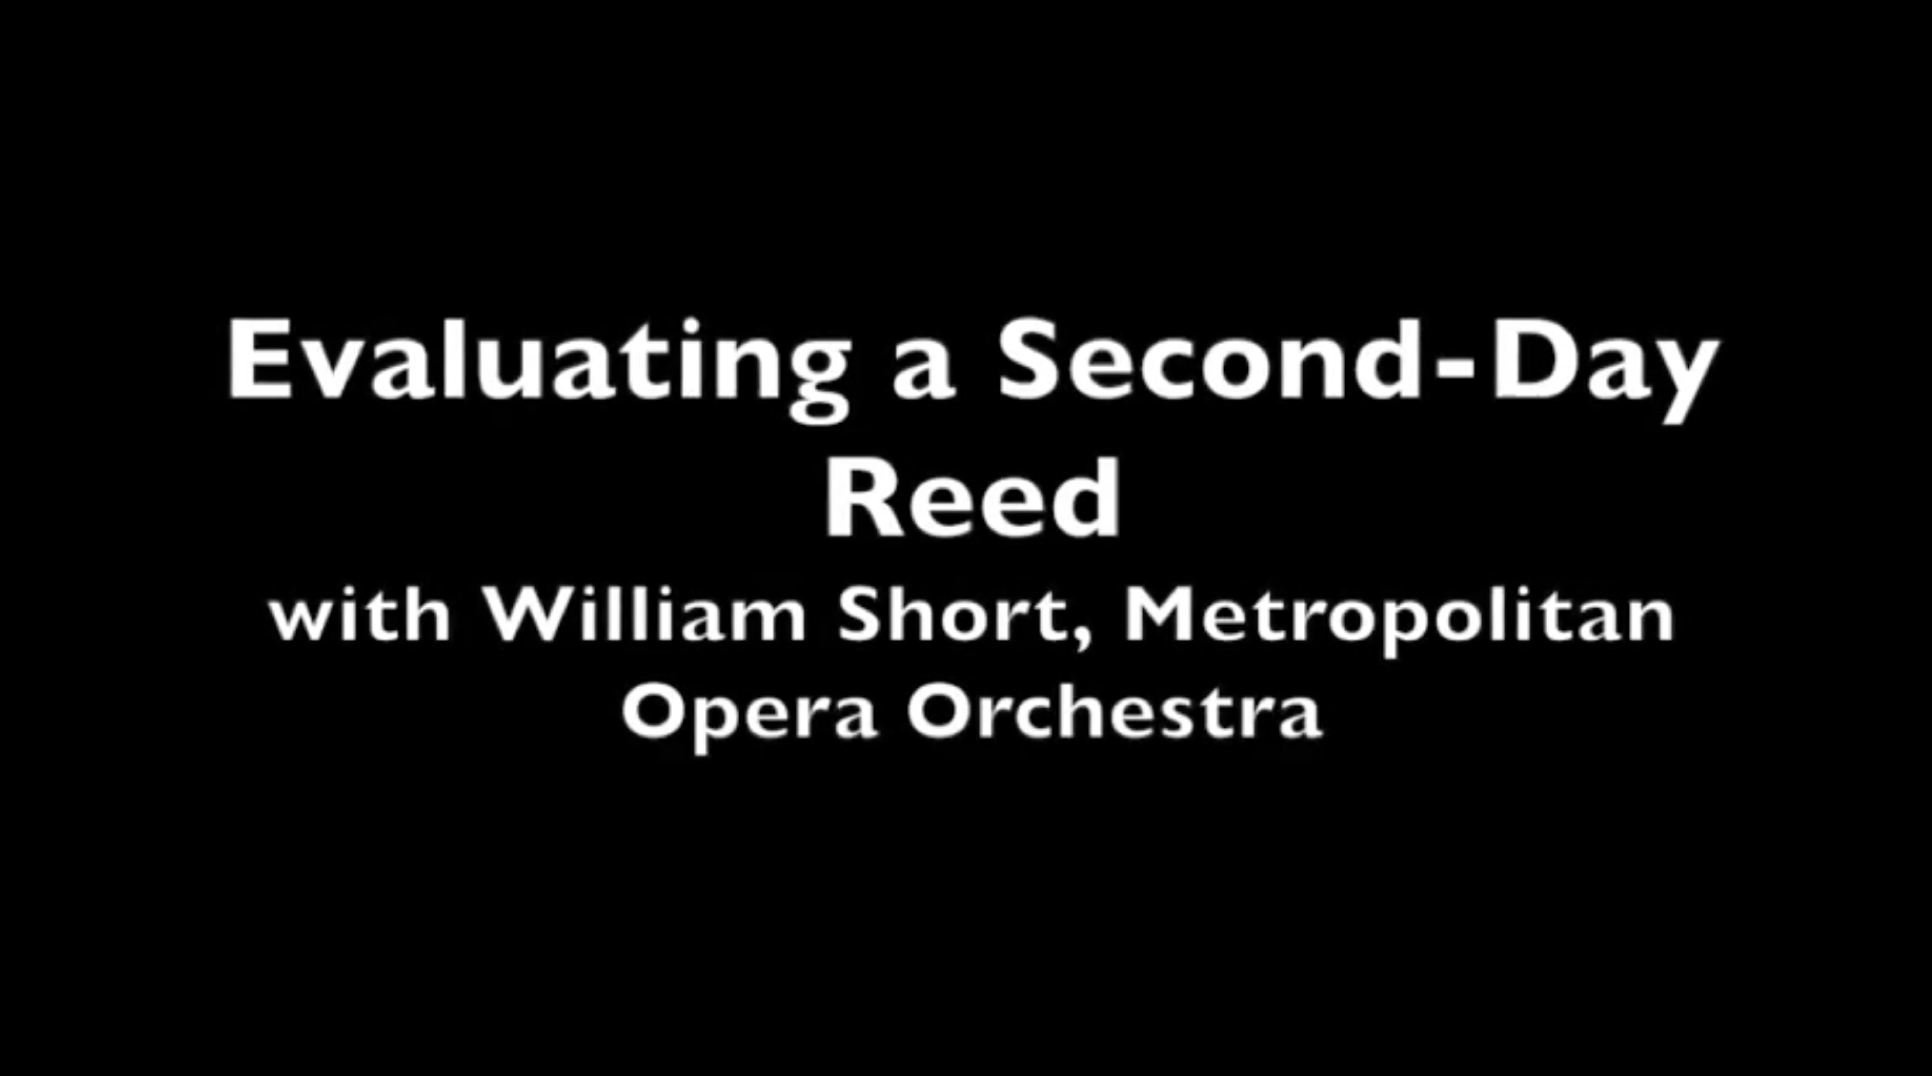 Evaluating a Second-Day Reed